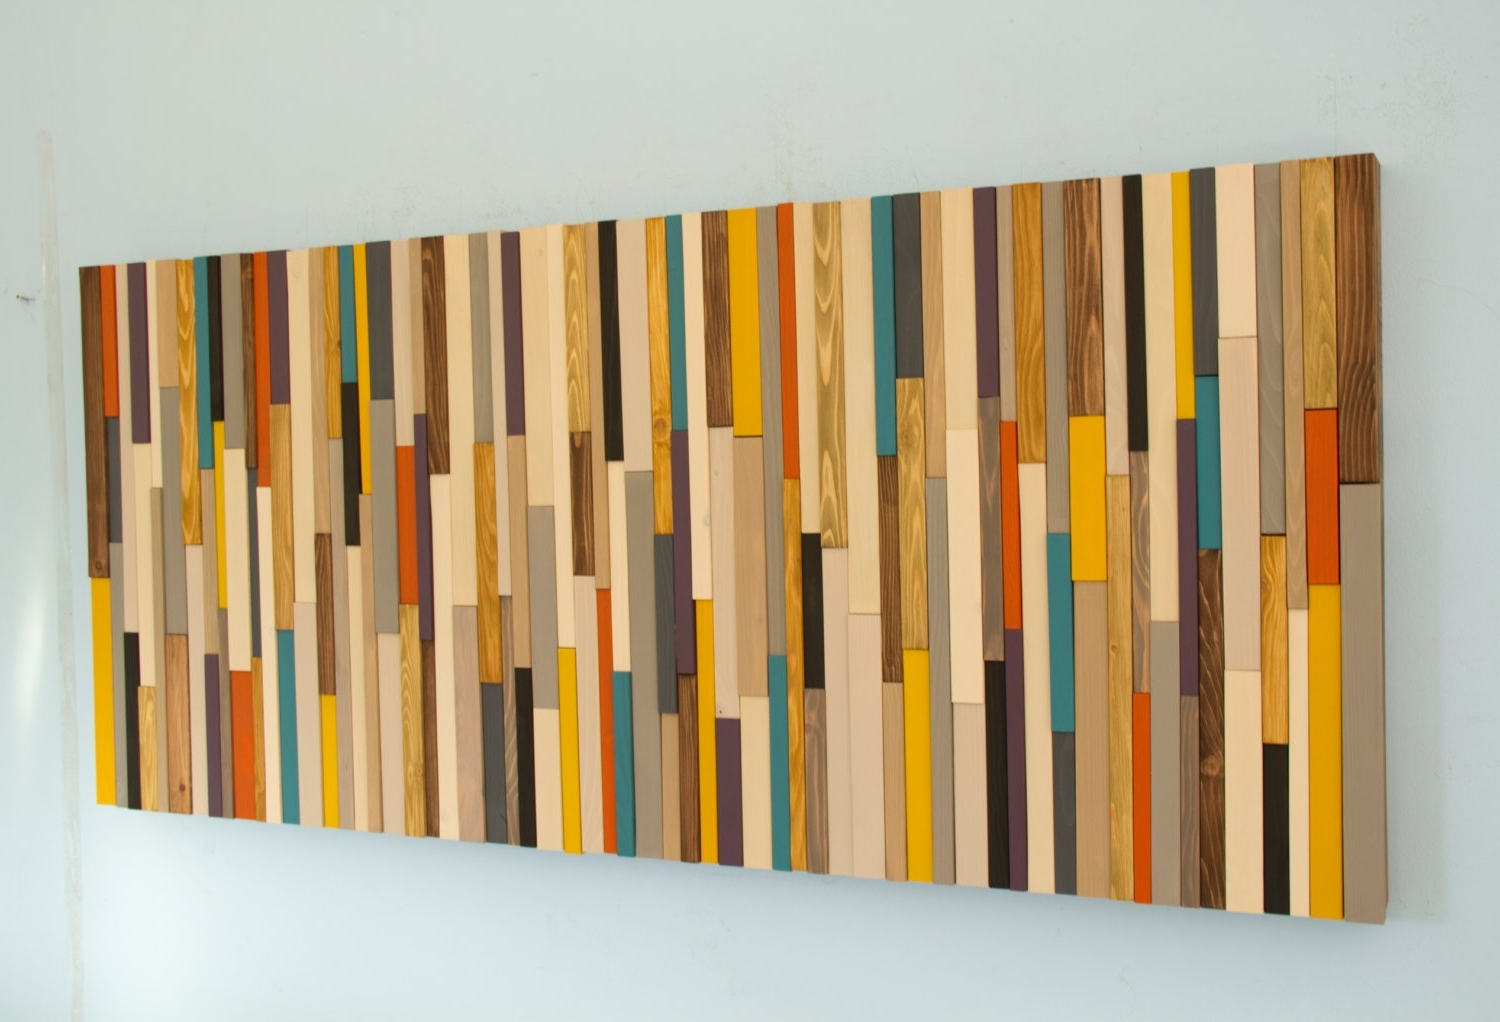 Newest Mid Century Wall Art With Regard To Mid Century Wall Art, Reclaimed Wood Art Sculpture, Painted Wood (View 13 of 15)